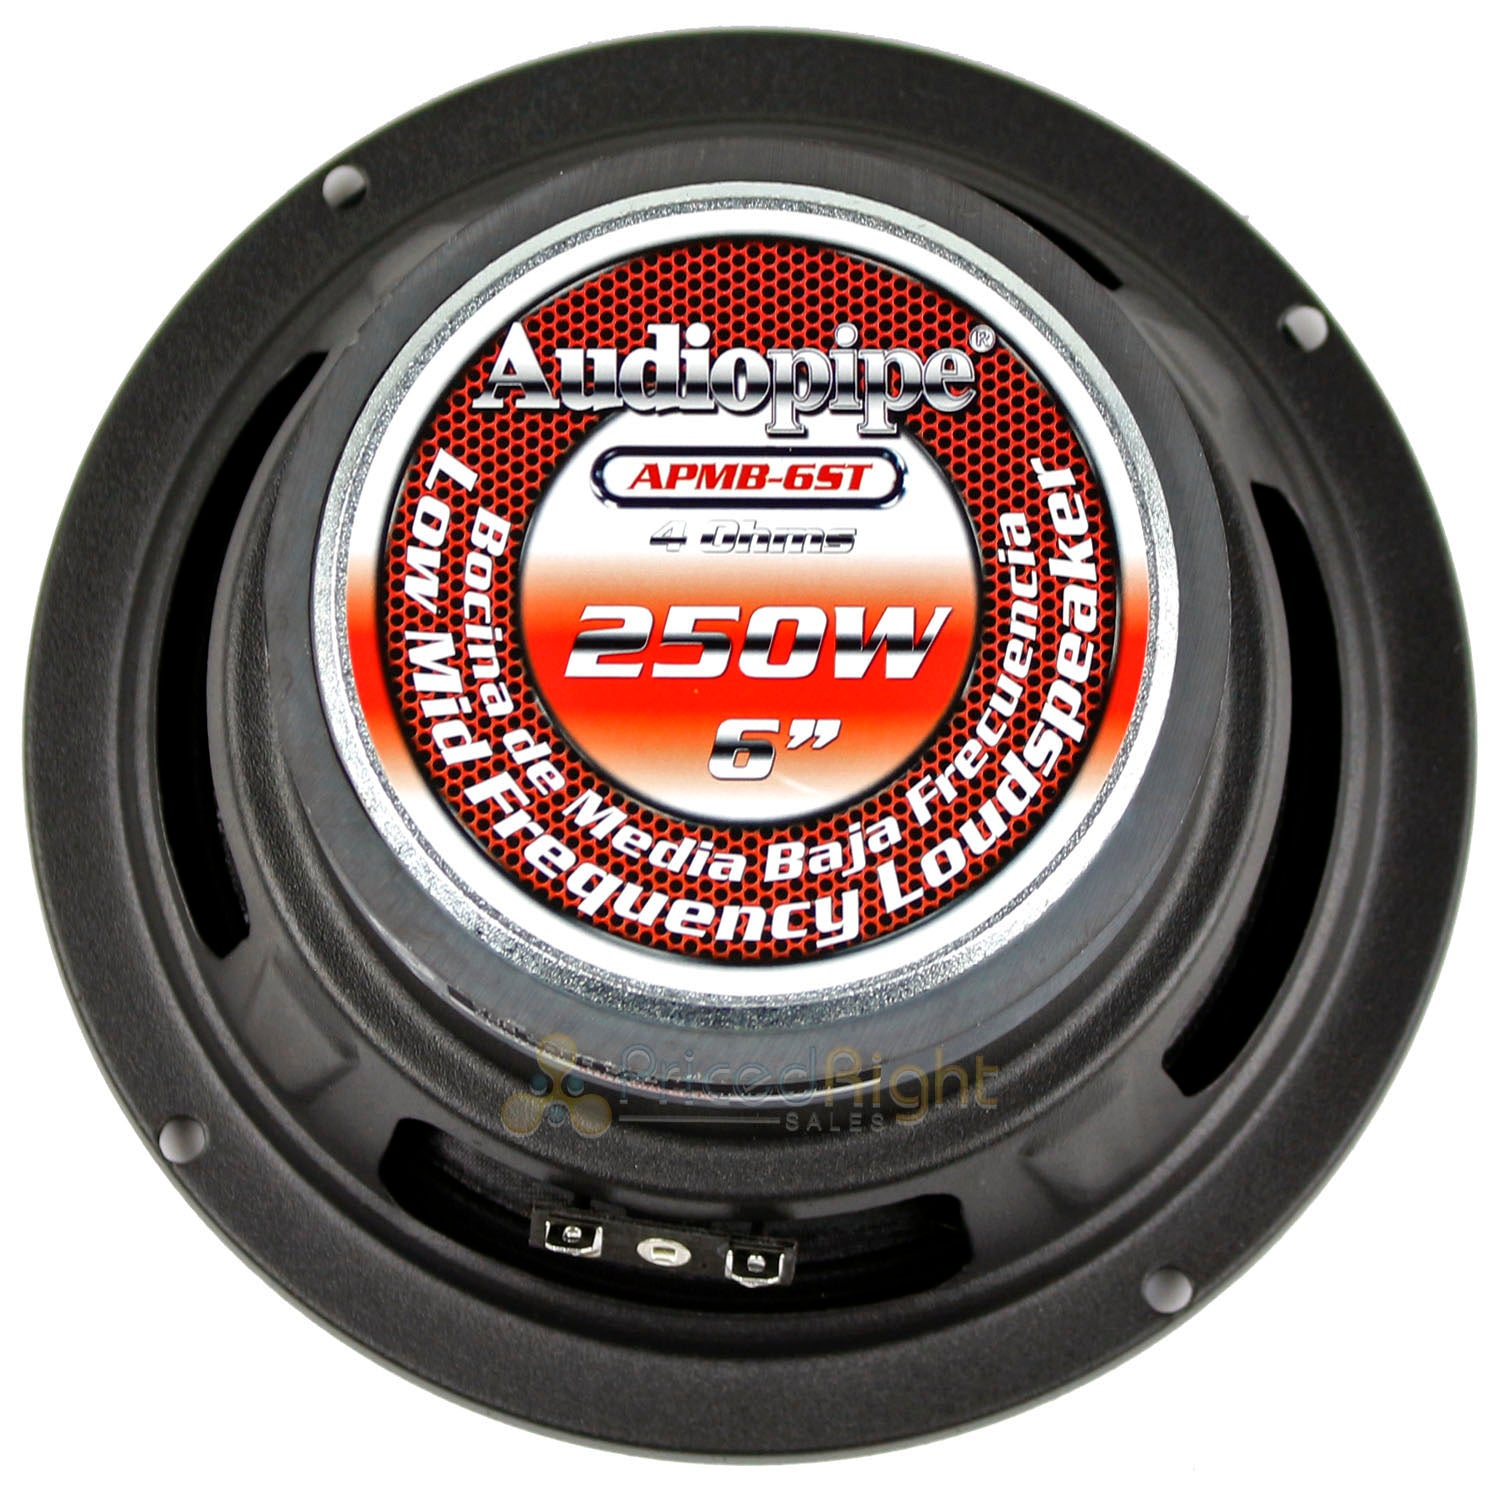 "2 Audiopipe 6"" Inch Low Midrange Speaker 400 Watts Max Pair Pack 4 Ohm APMB-6ST"